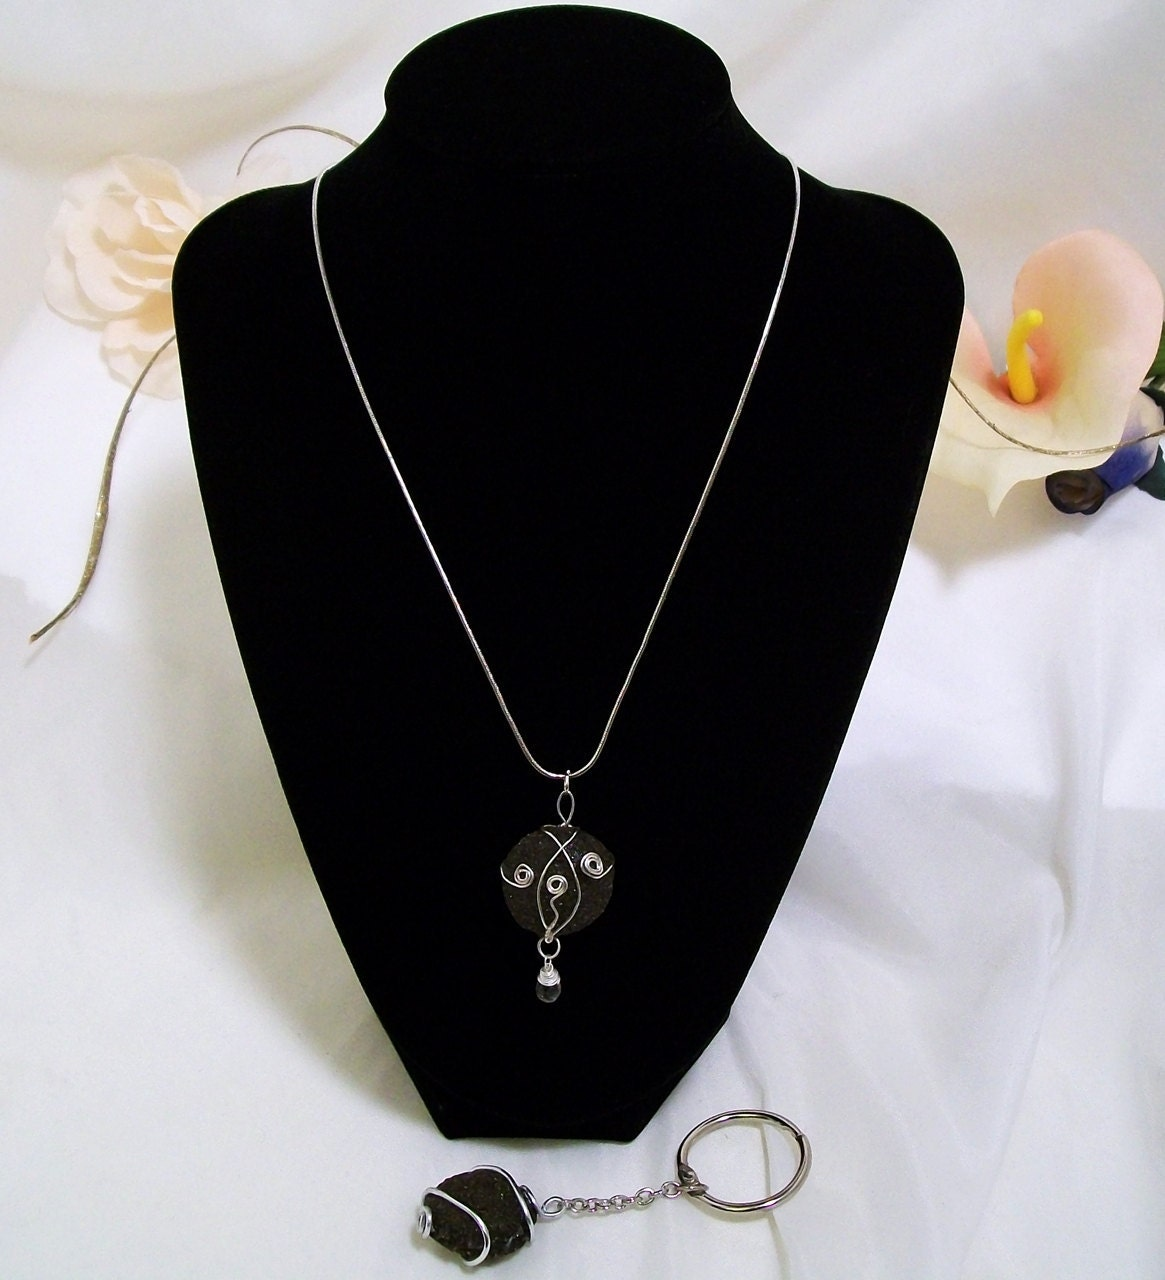 RESERVED Custom Request For Corla - Boji Energy Healing Necklace and Mate